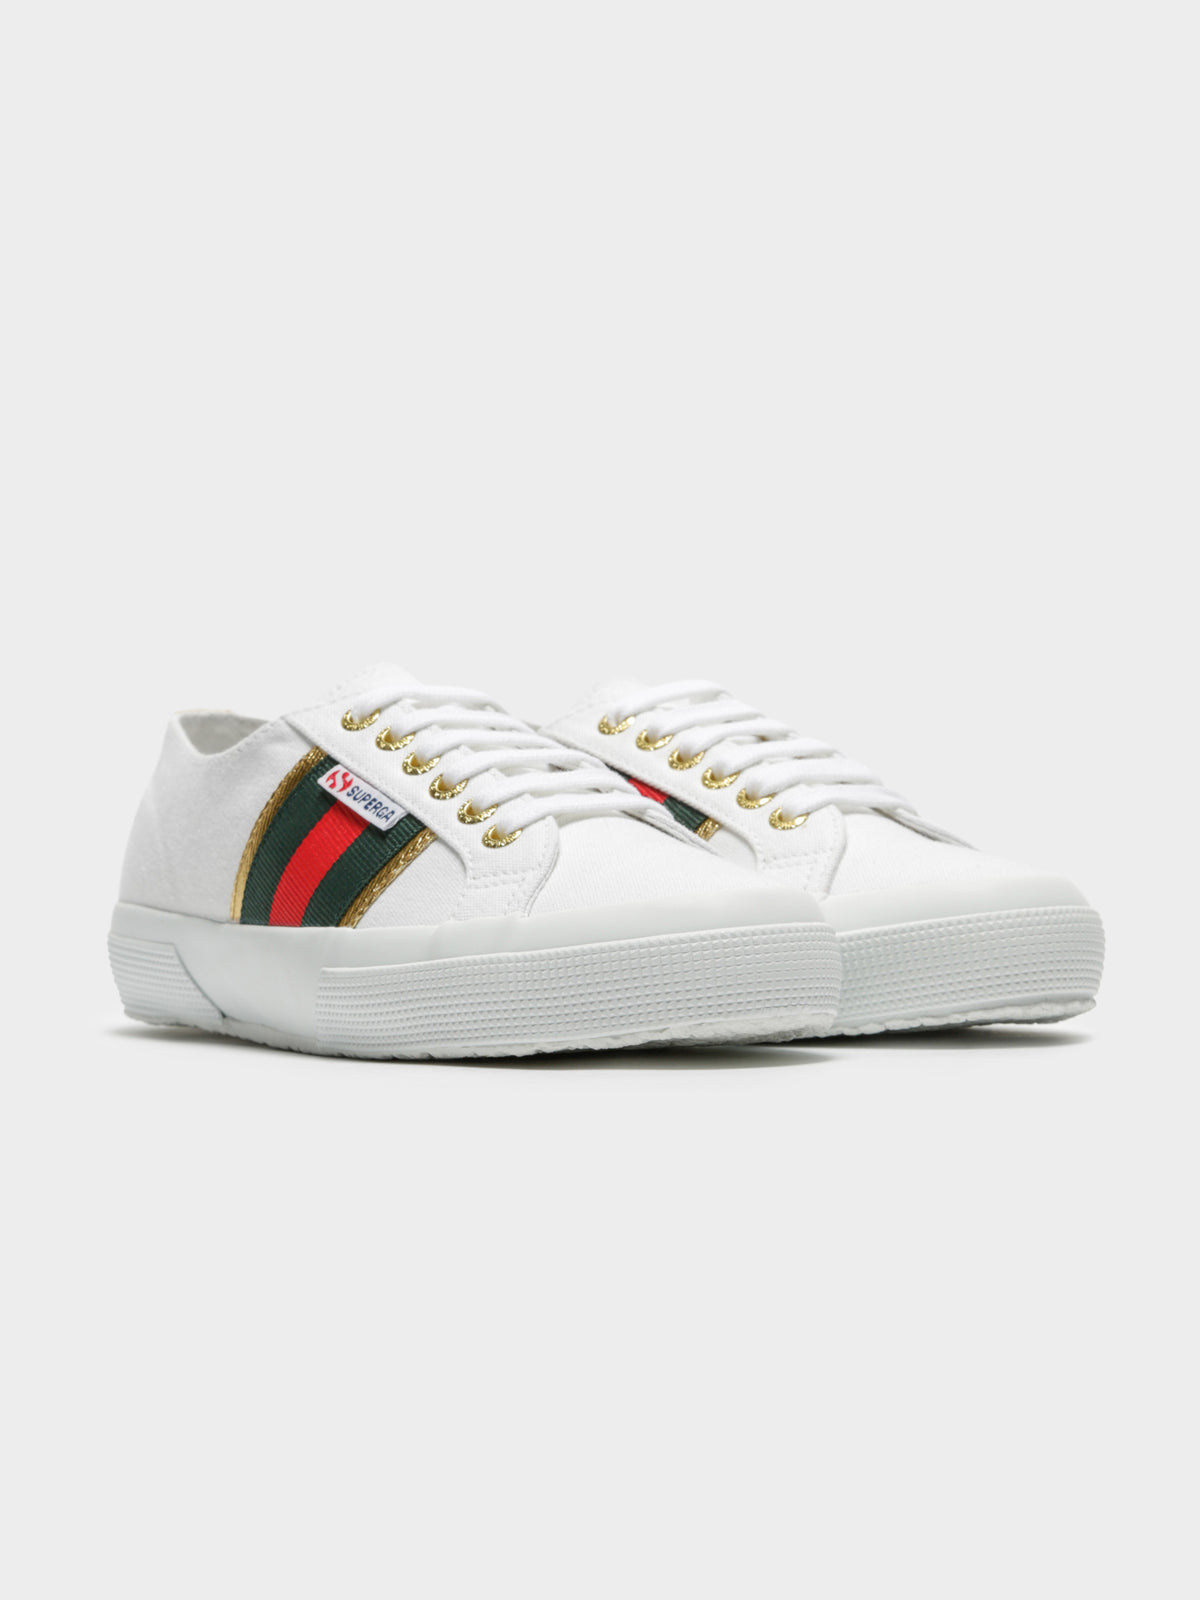 Womens 2750 Cotuflagside Sneakers in White & Green